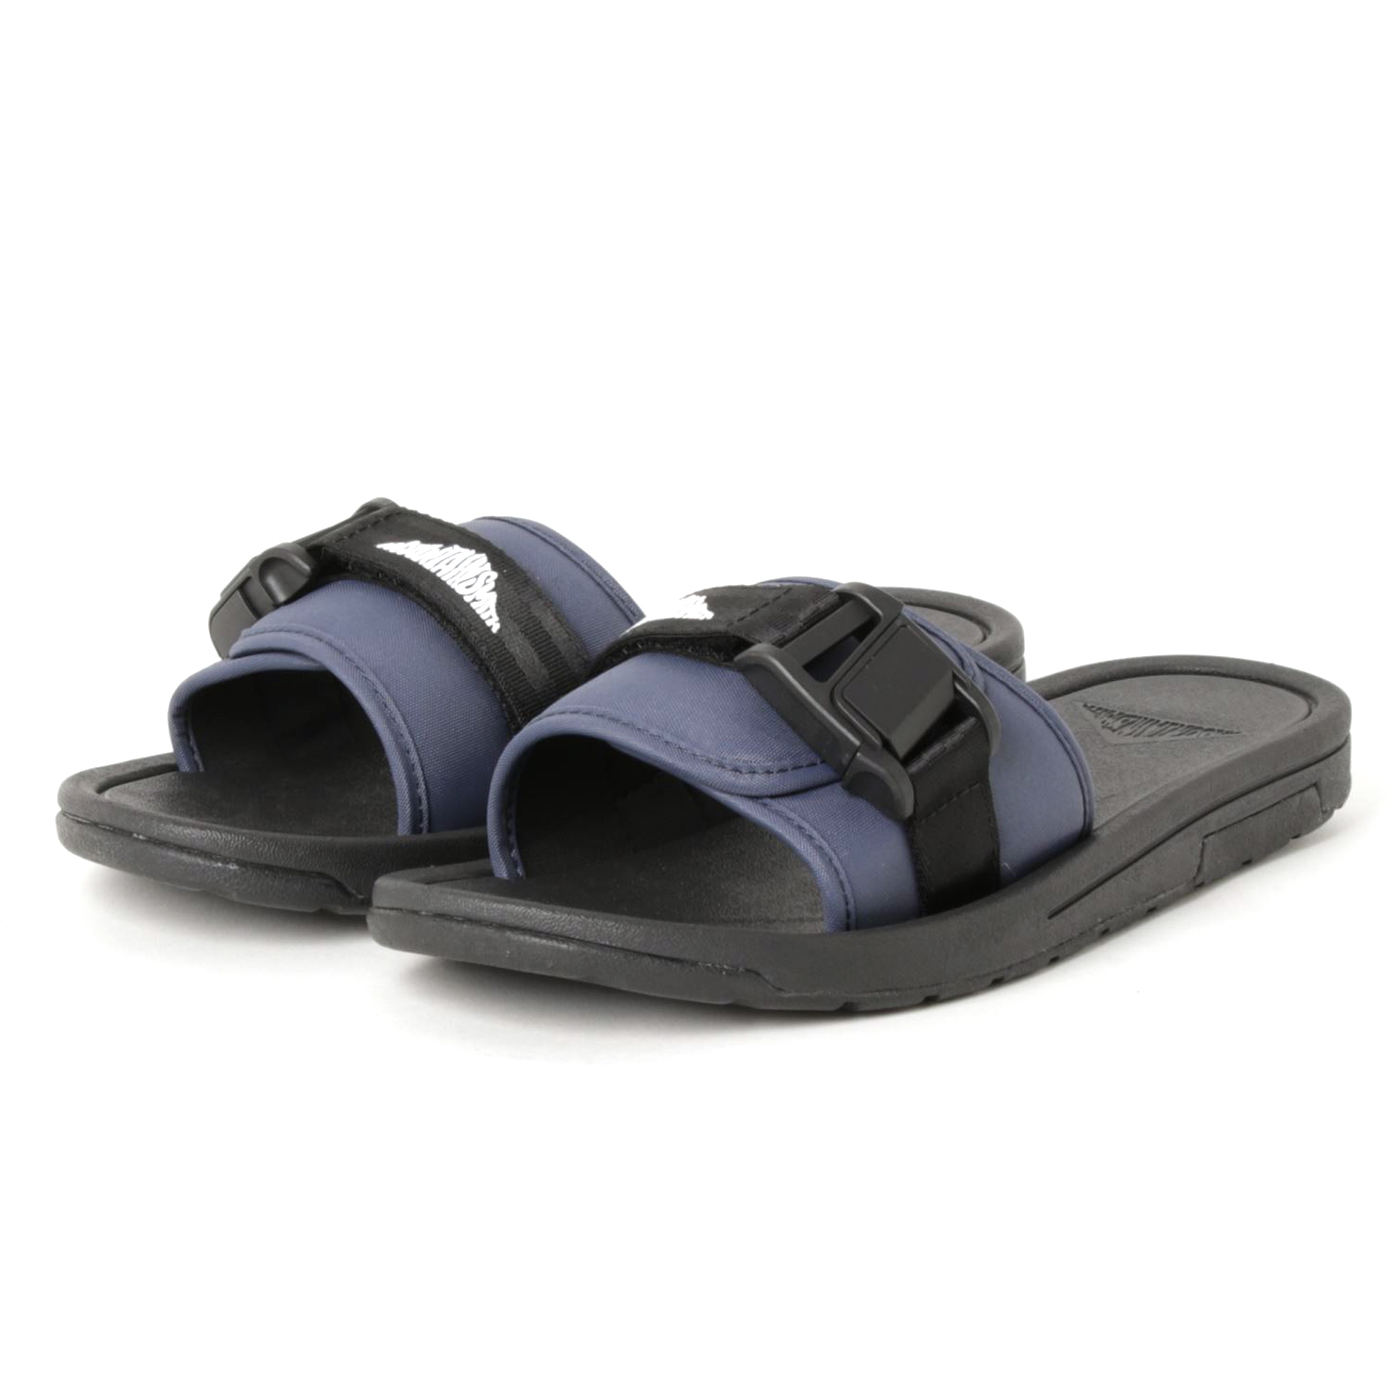 product: Garfield / color: NAVY 1